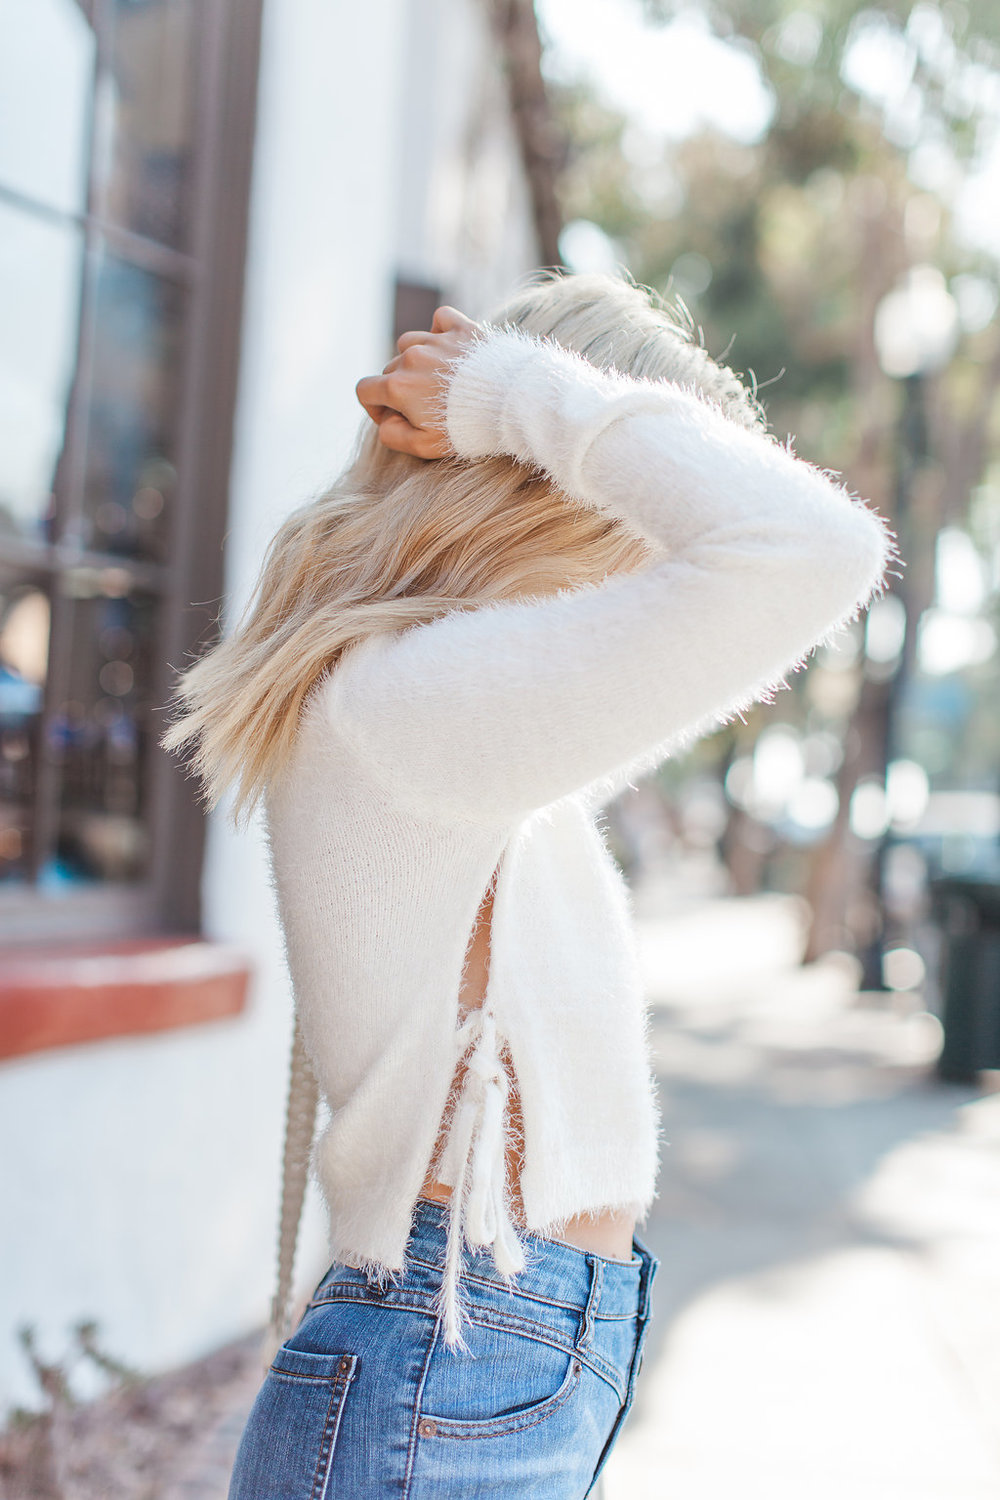 cozy sweater_cut out sweater_high waisted denim_fluffy sweater_icy blonde lob_icy blonde hair_wavy lob hair_tom ford blush sunglasses_tan booties_elle a boutique_laguna beach_savvy javvy_oc fashion blogger_la fashion blogger